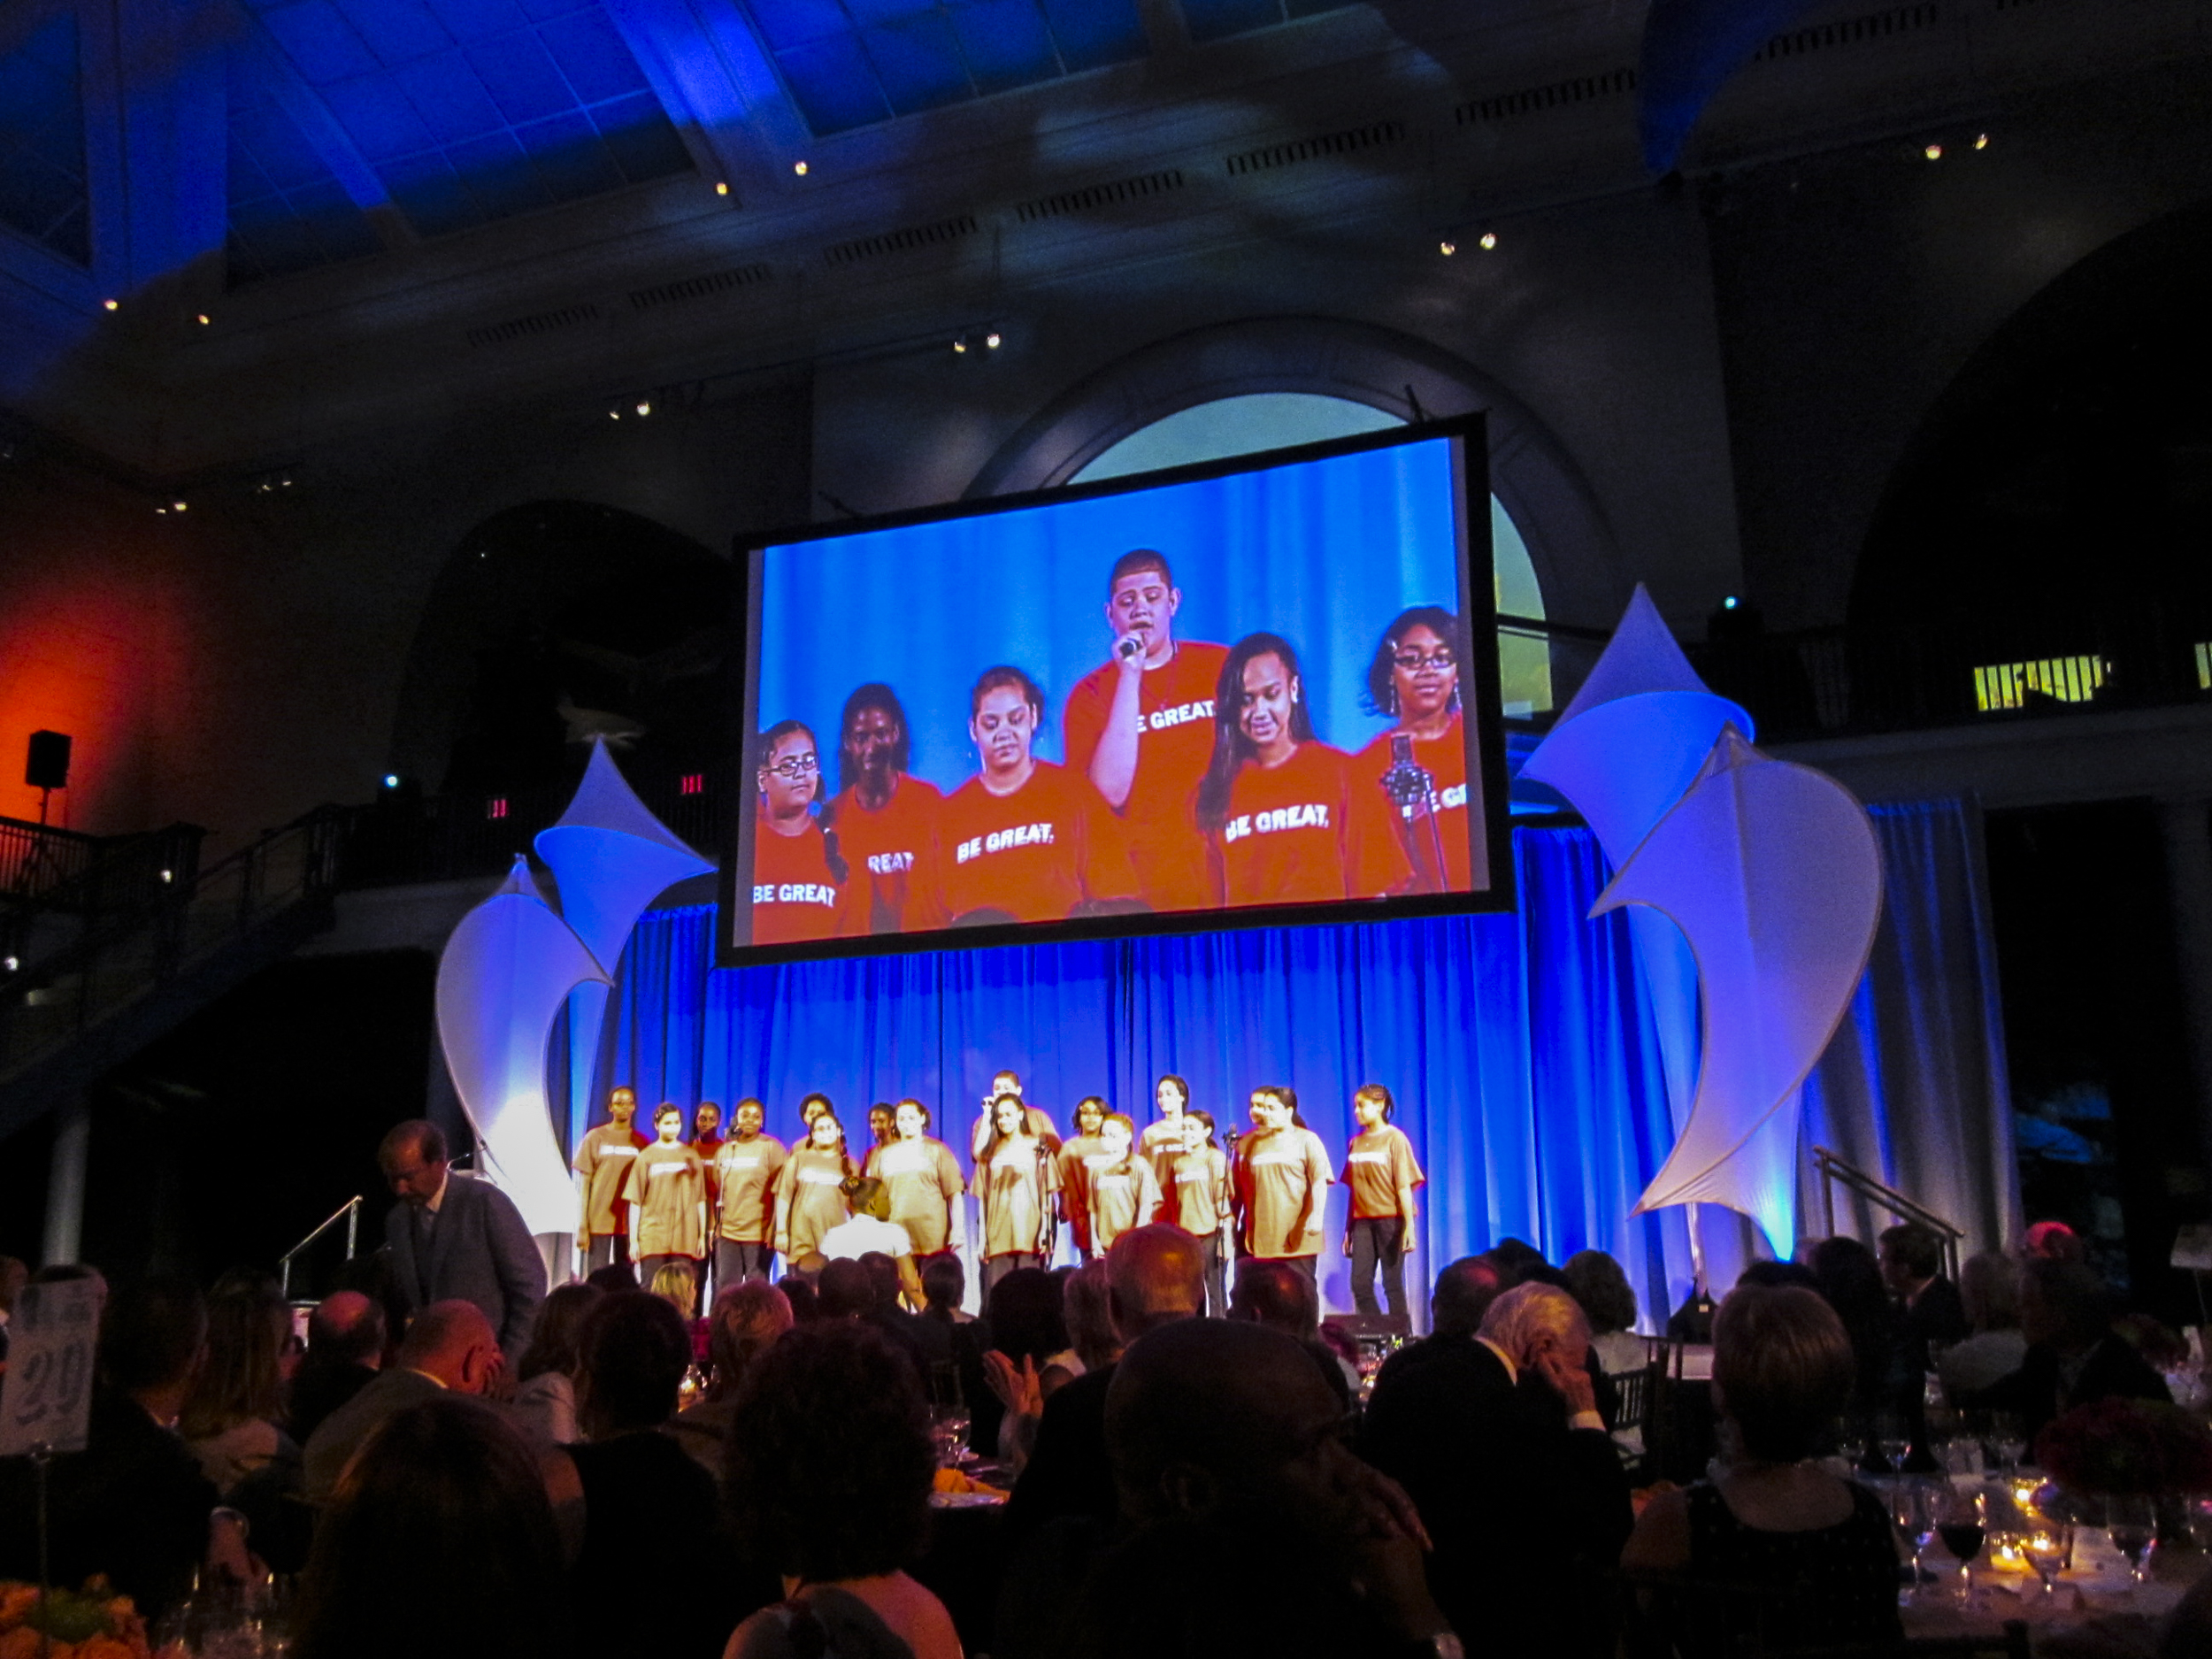 ceci-new-york-gives-back-boys-and-girls-club-of-america-great-futures-gala-2011-invitations-party-decor-museum-of-natural-history-event-space-venue-14.jpg